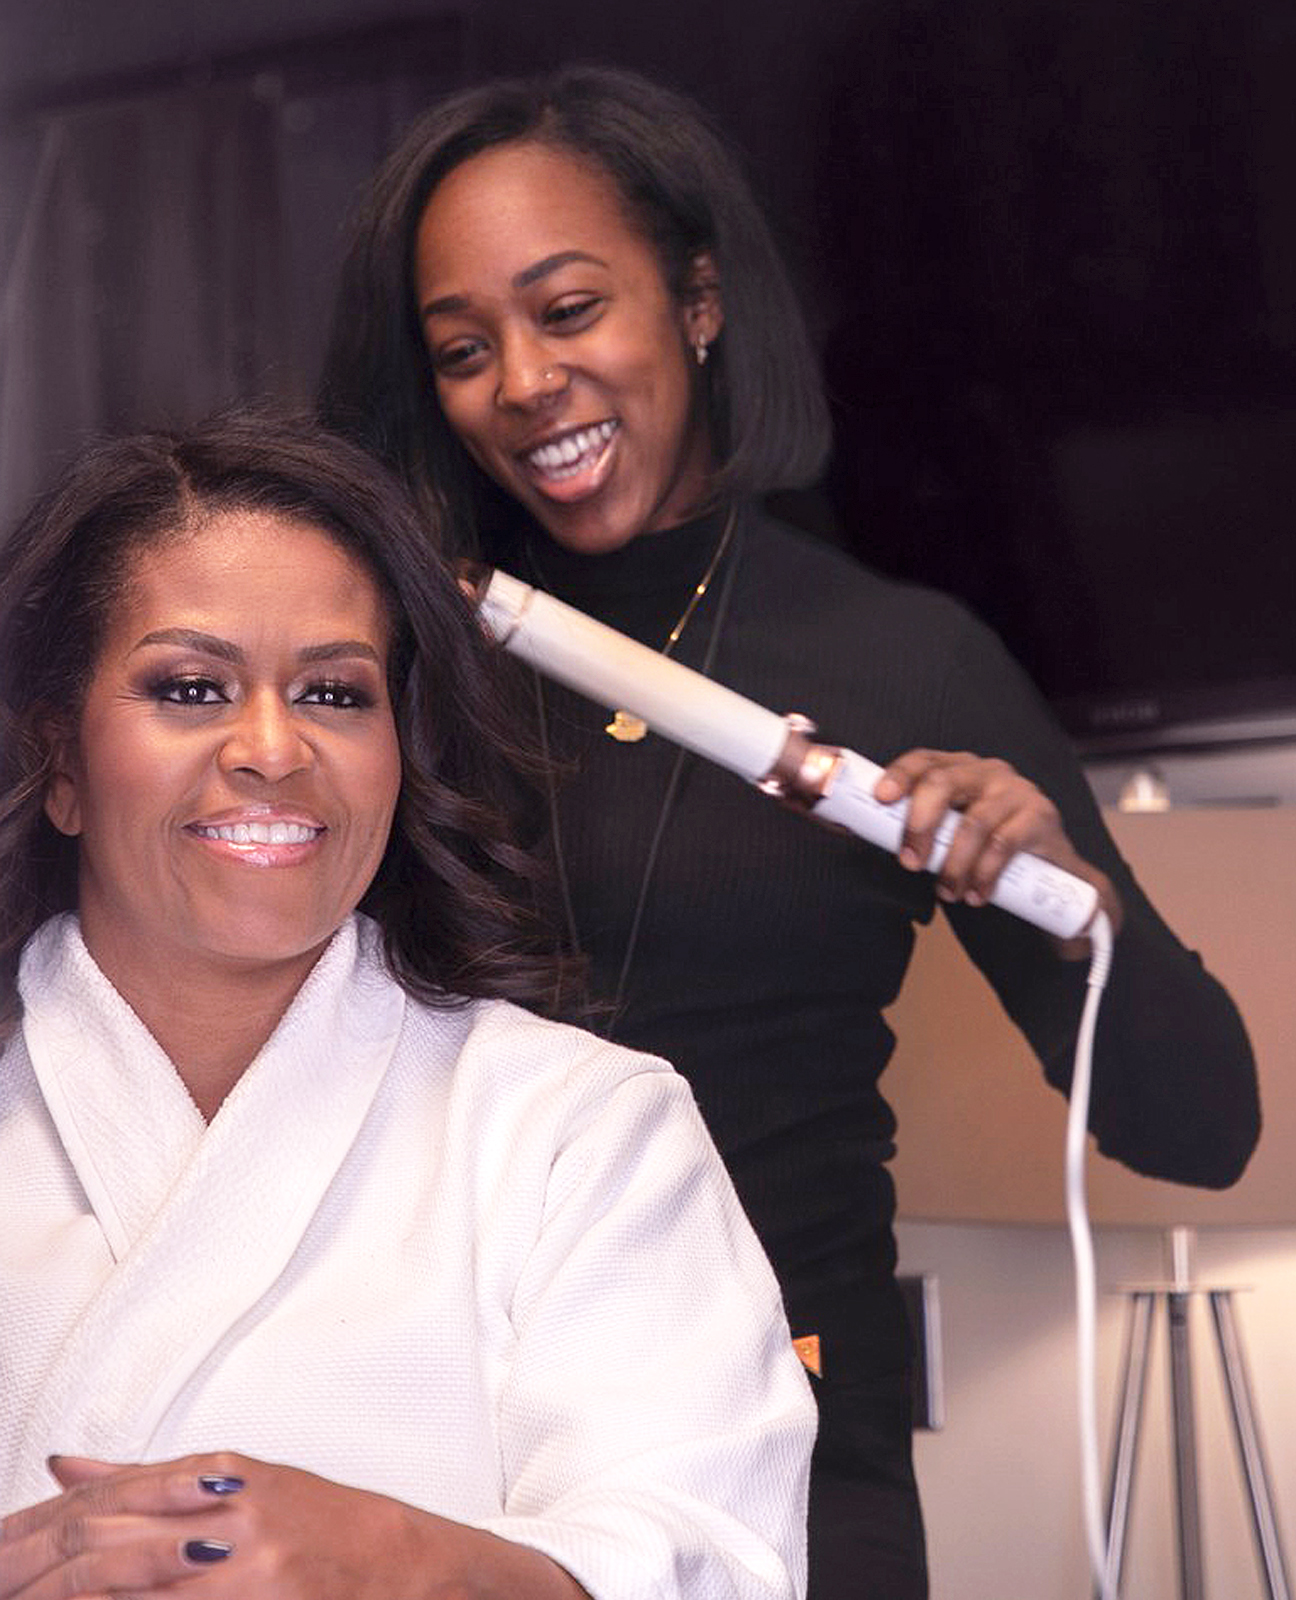 Yene styling First Lady Obama for a press event.